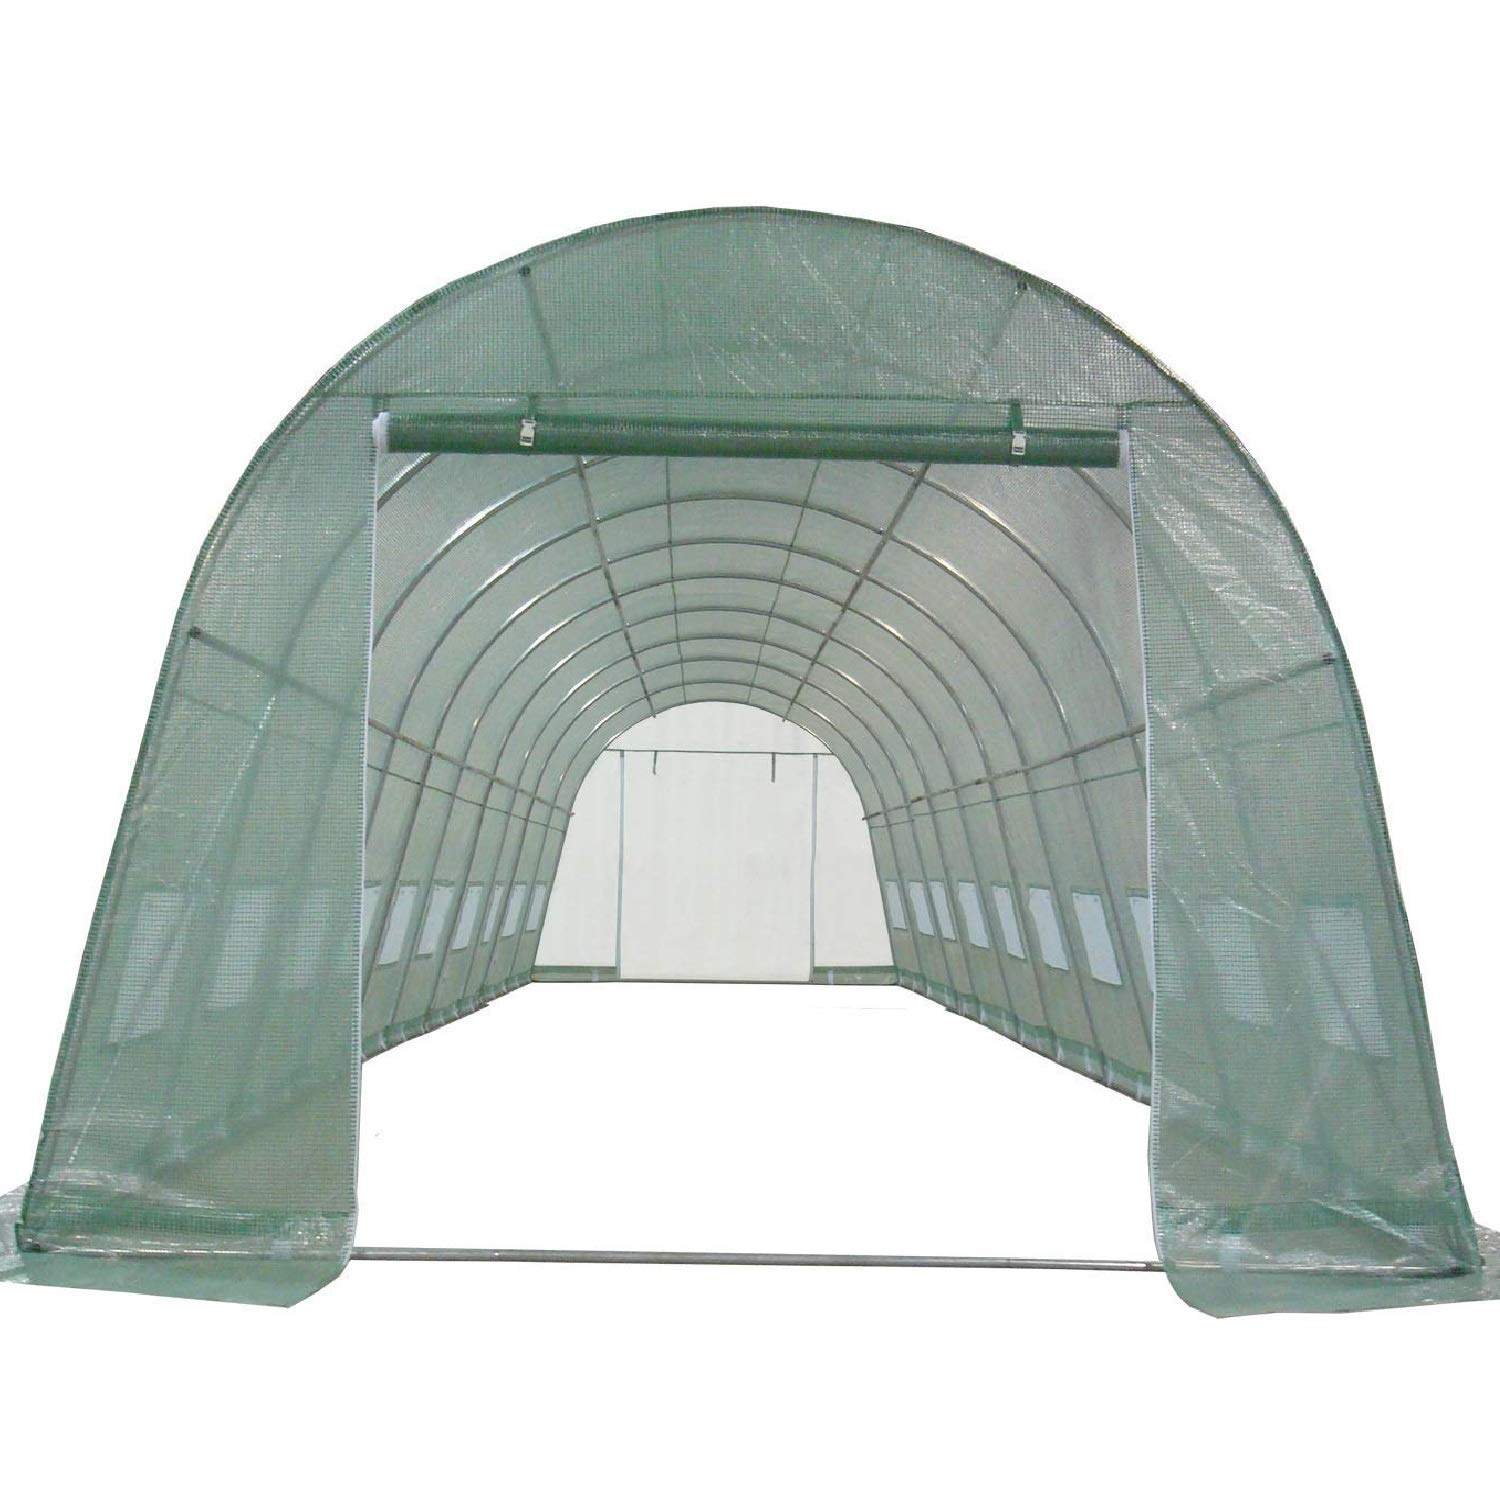 DELTA Canopies Greenhouse 33'x13'x7.5' - Large Heavy Duty Green House Walk in Hothouse 185 Pounds By by DELTA Canopies